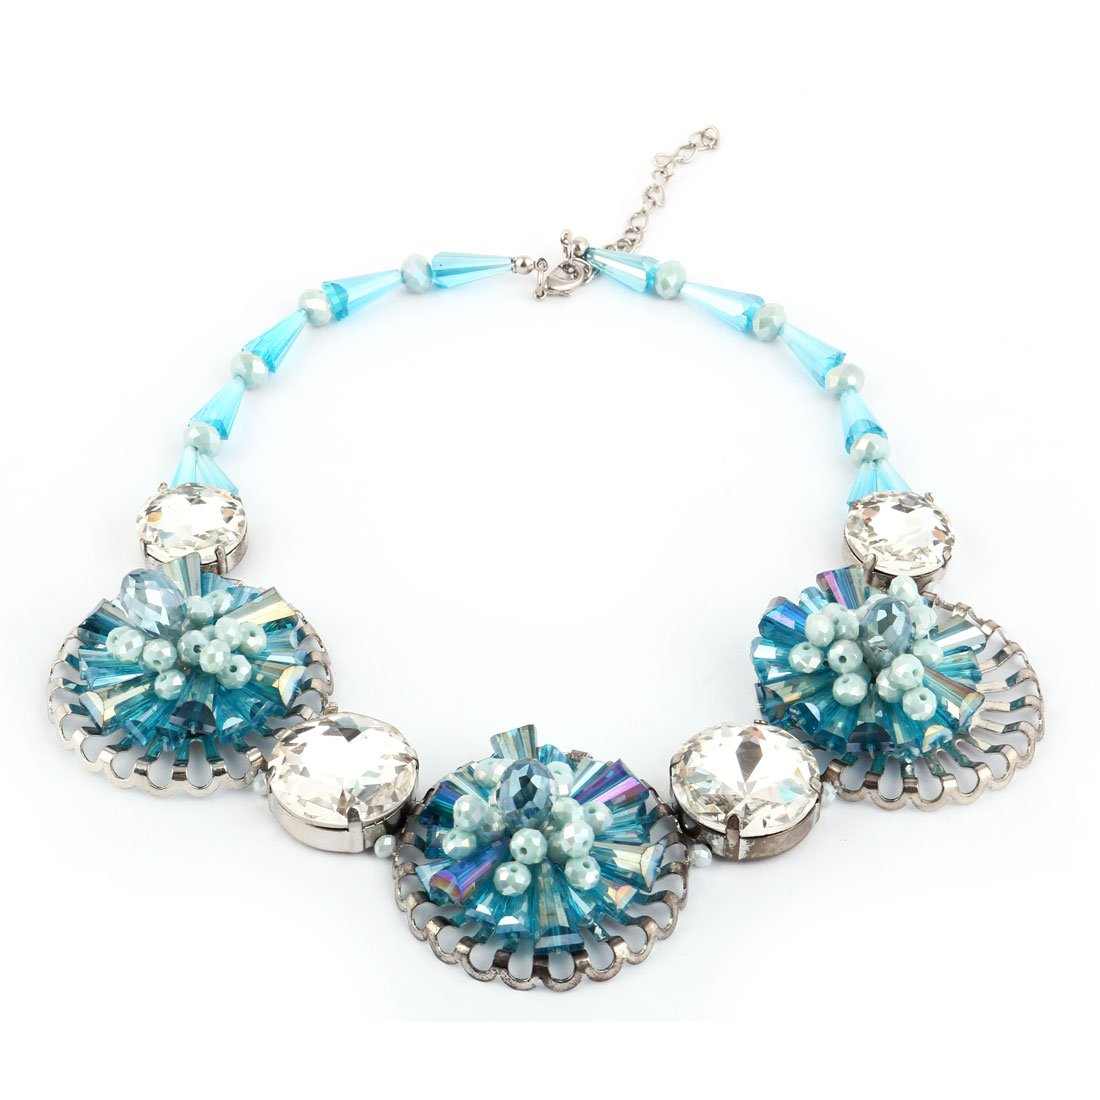 Lady Rhinestone Inlaid Statement Charm Cluster Chunky Necklace Neck Chain Choker Blue